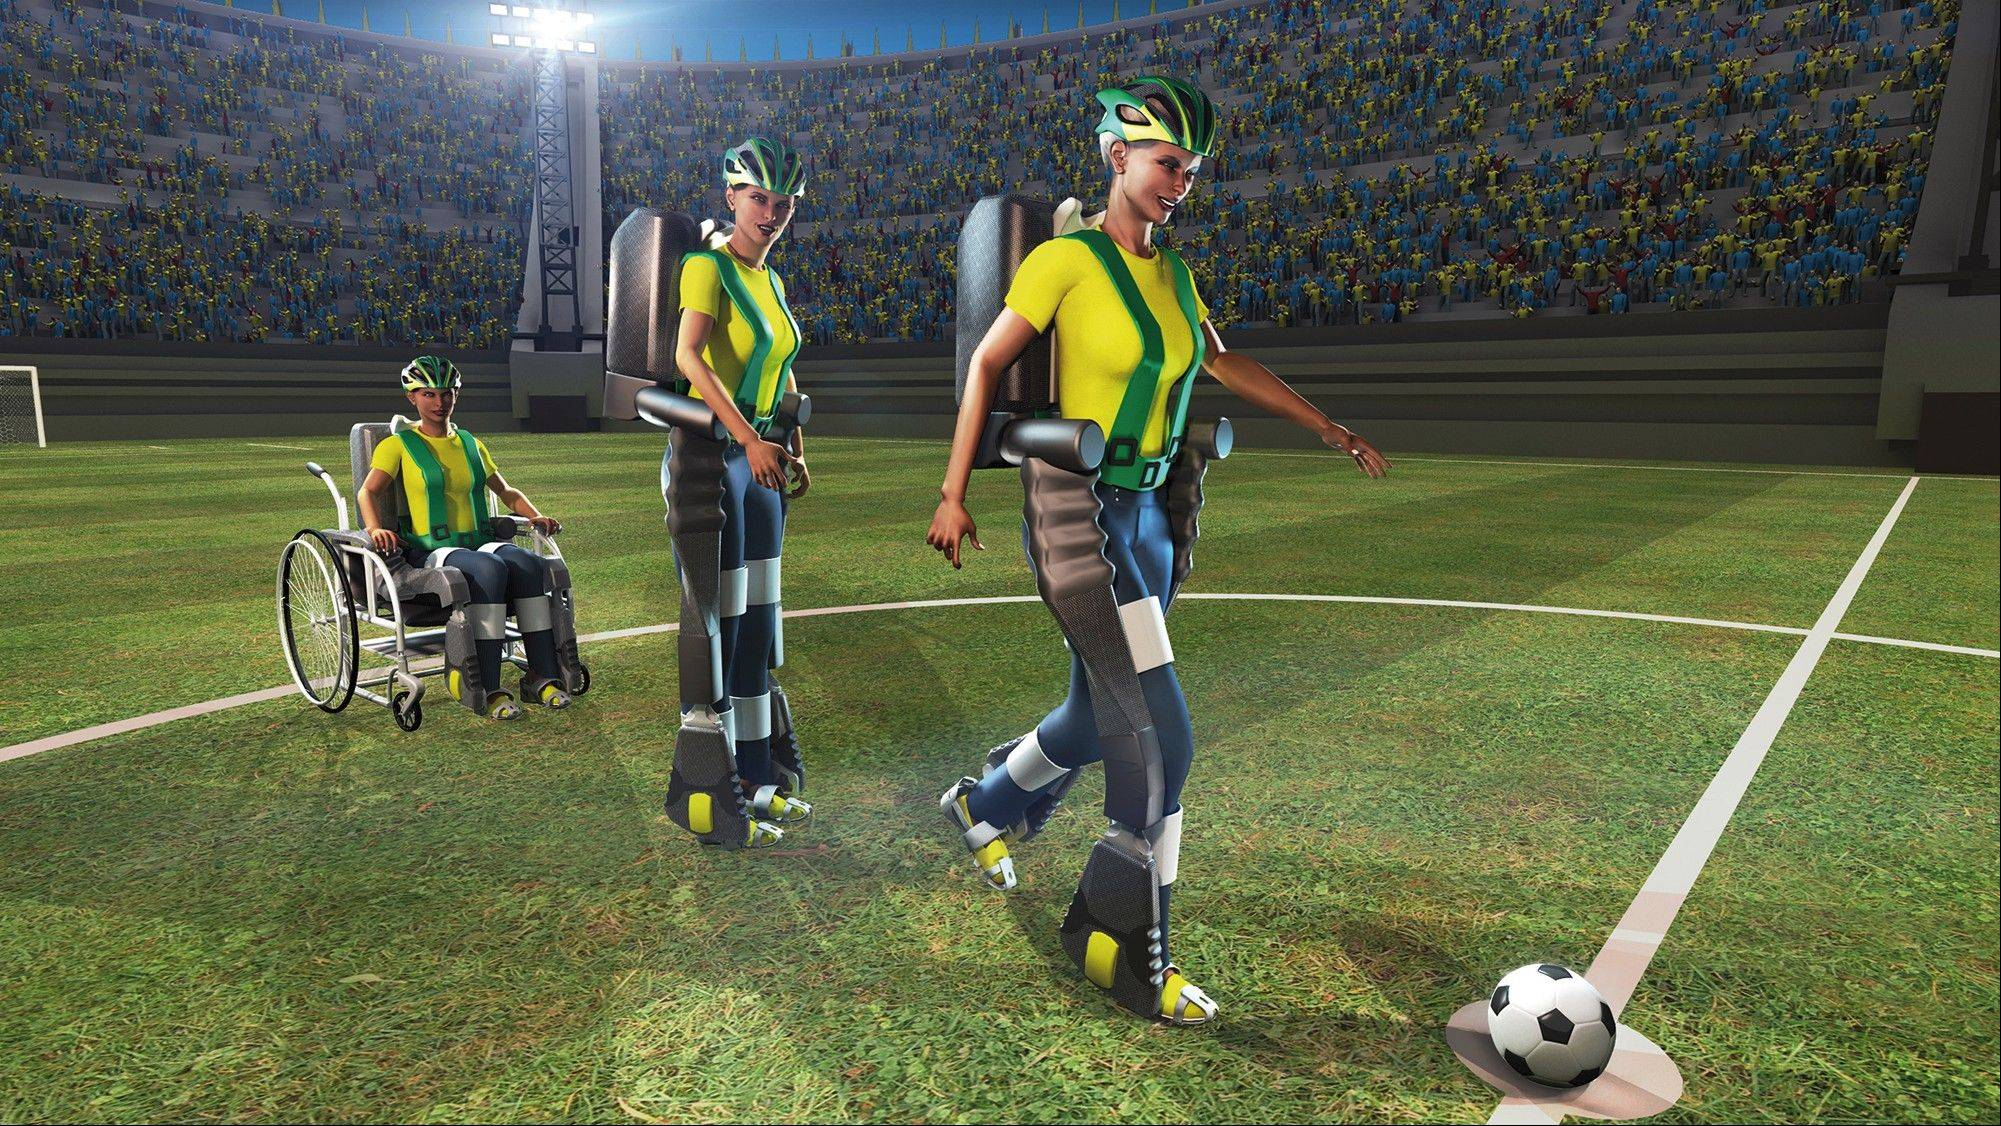 Scientists hope to have a disabled teenager kick off the 2014 World Cup in Brazil.